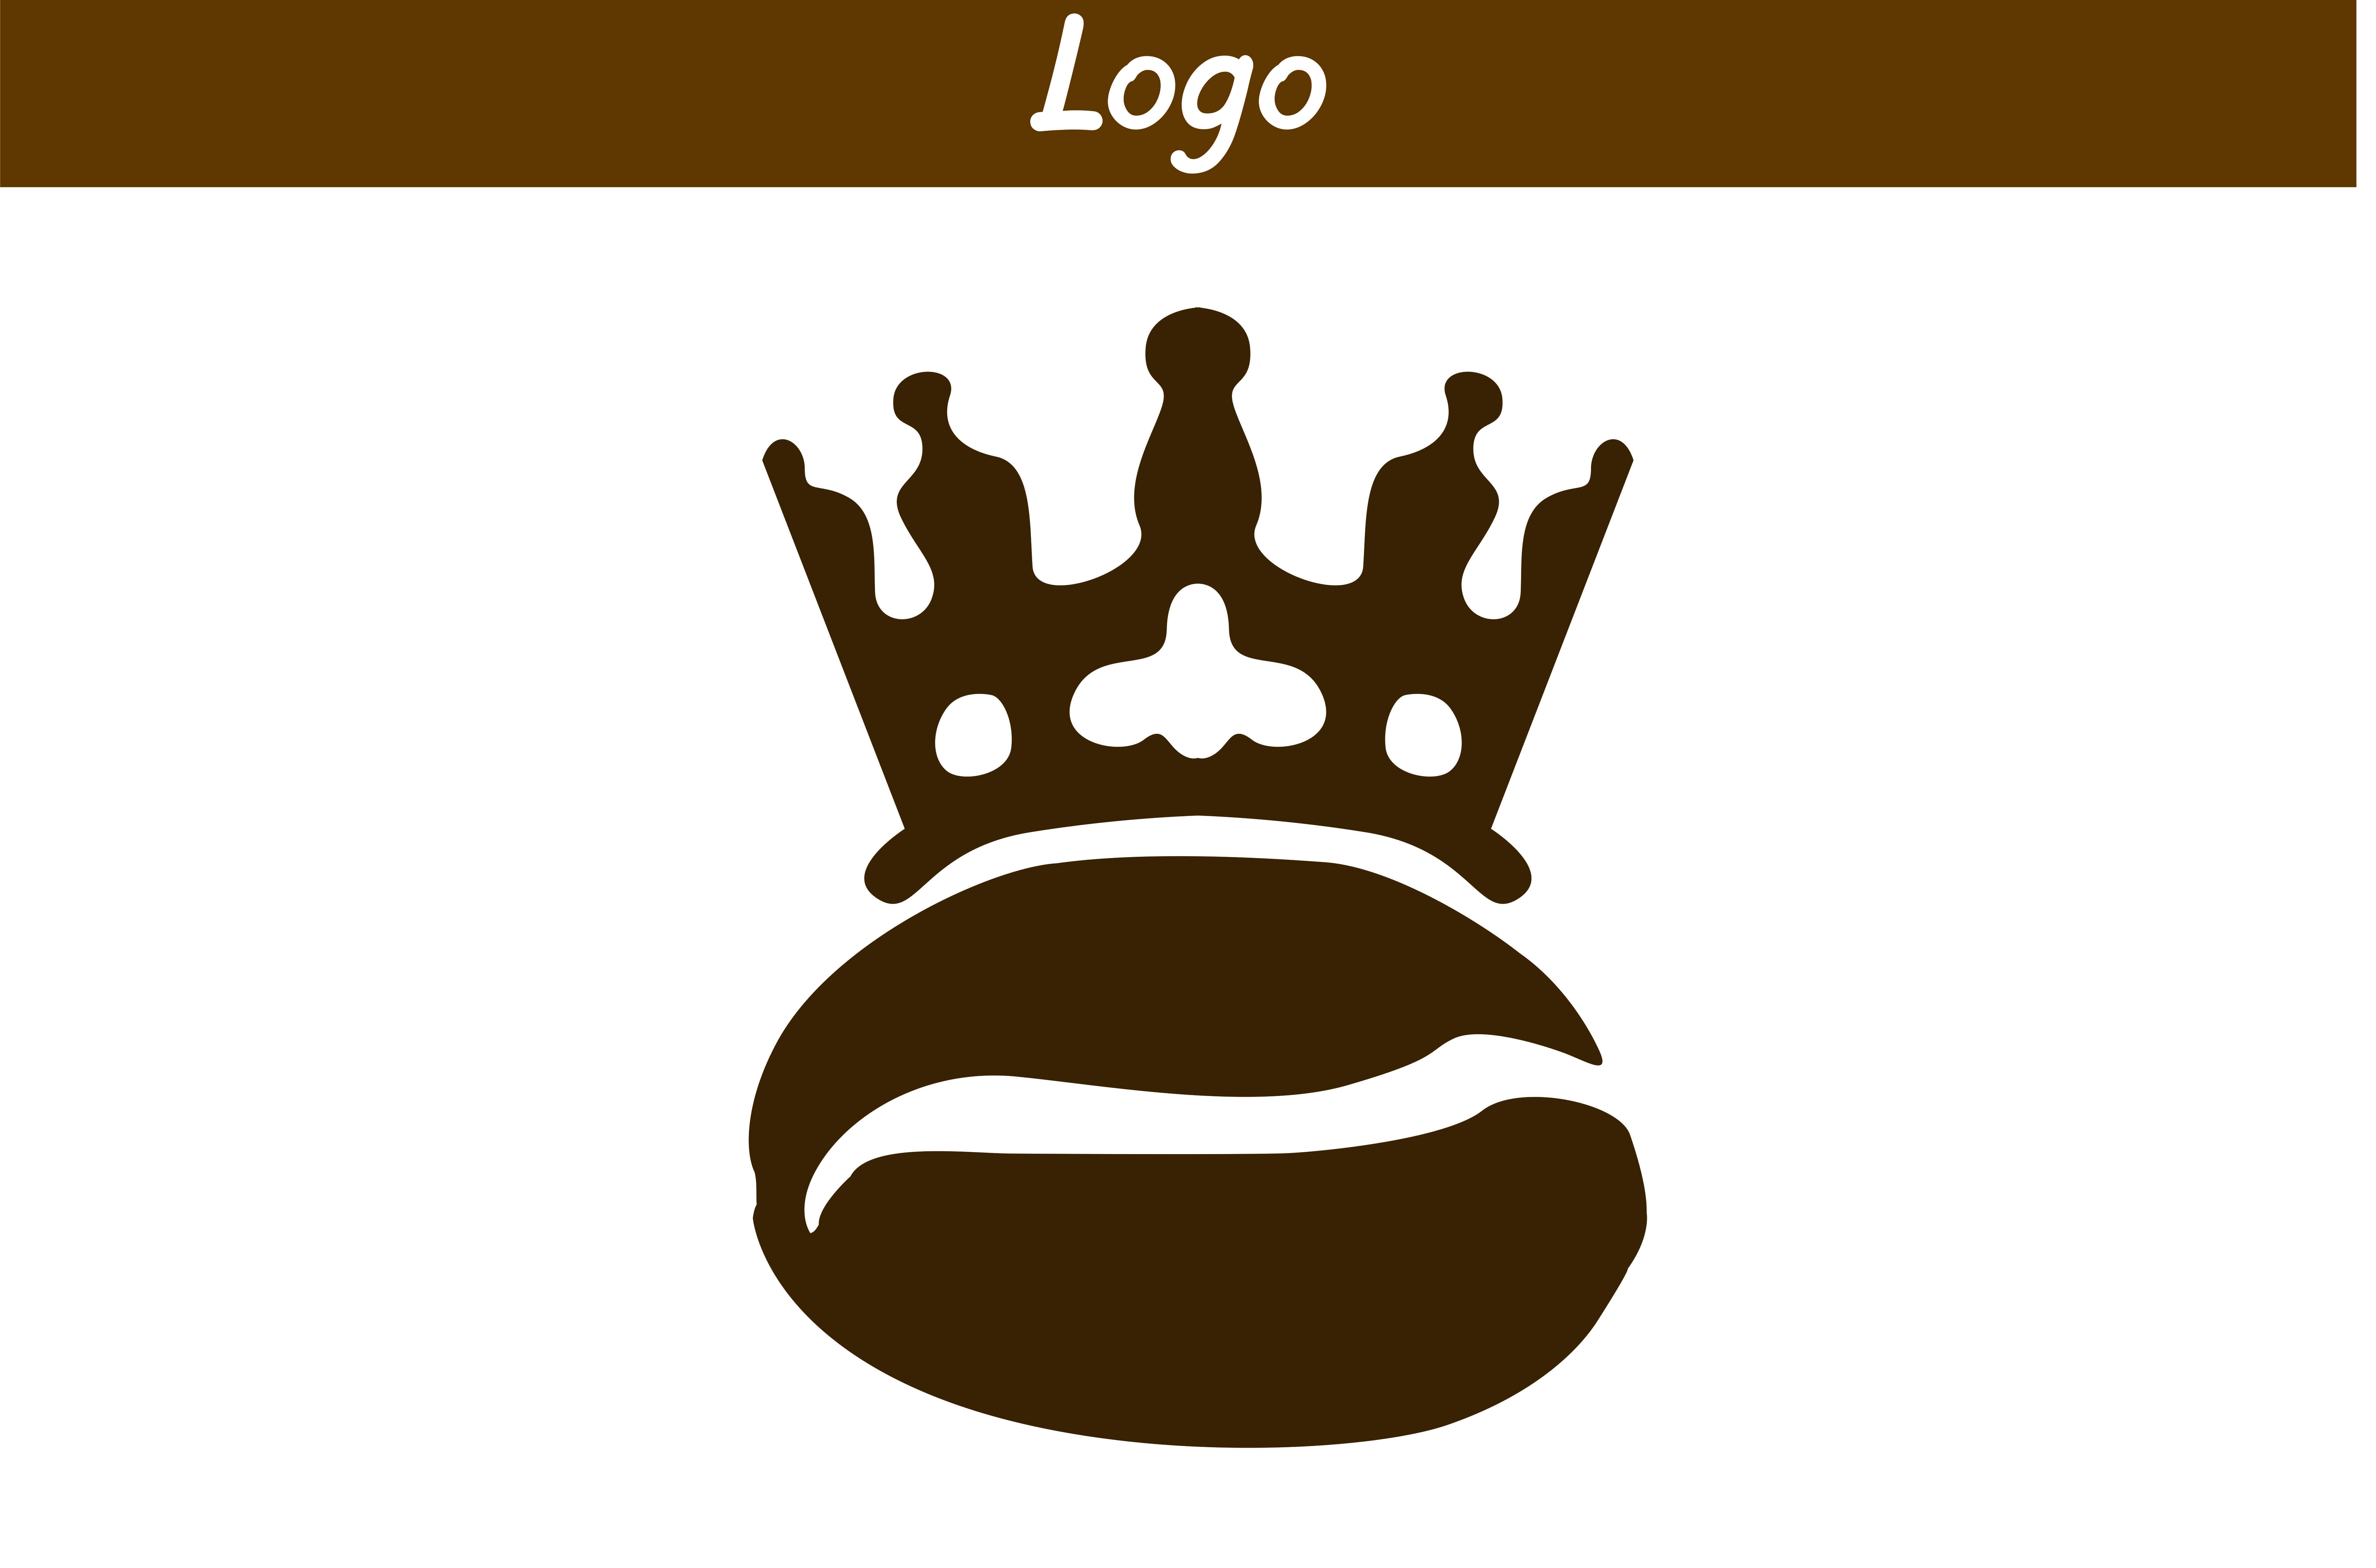 Download Free King Coffee Logo Graphic By Arief Sapta Adjie Creative Fabrica for Cricut Explore, Silhouette and other cutting machines.